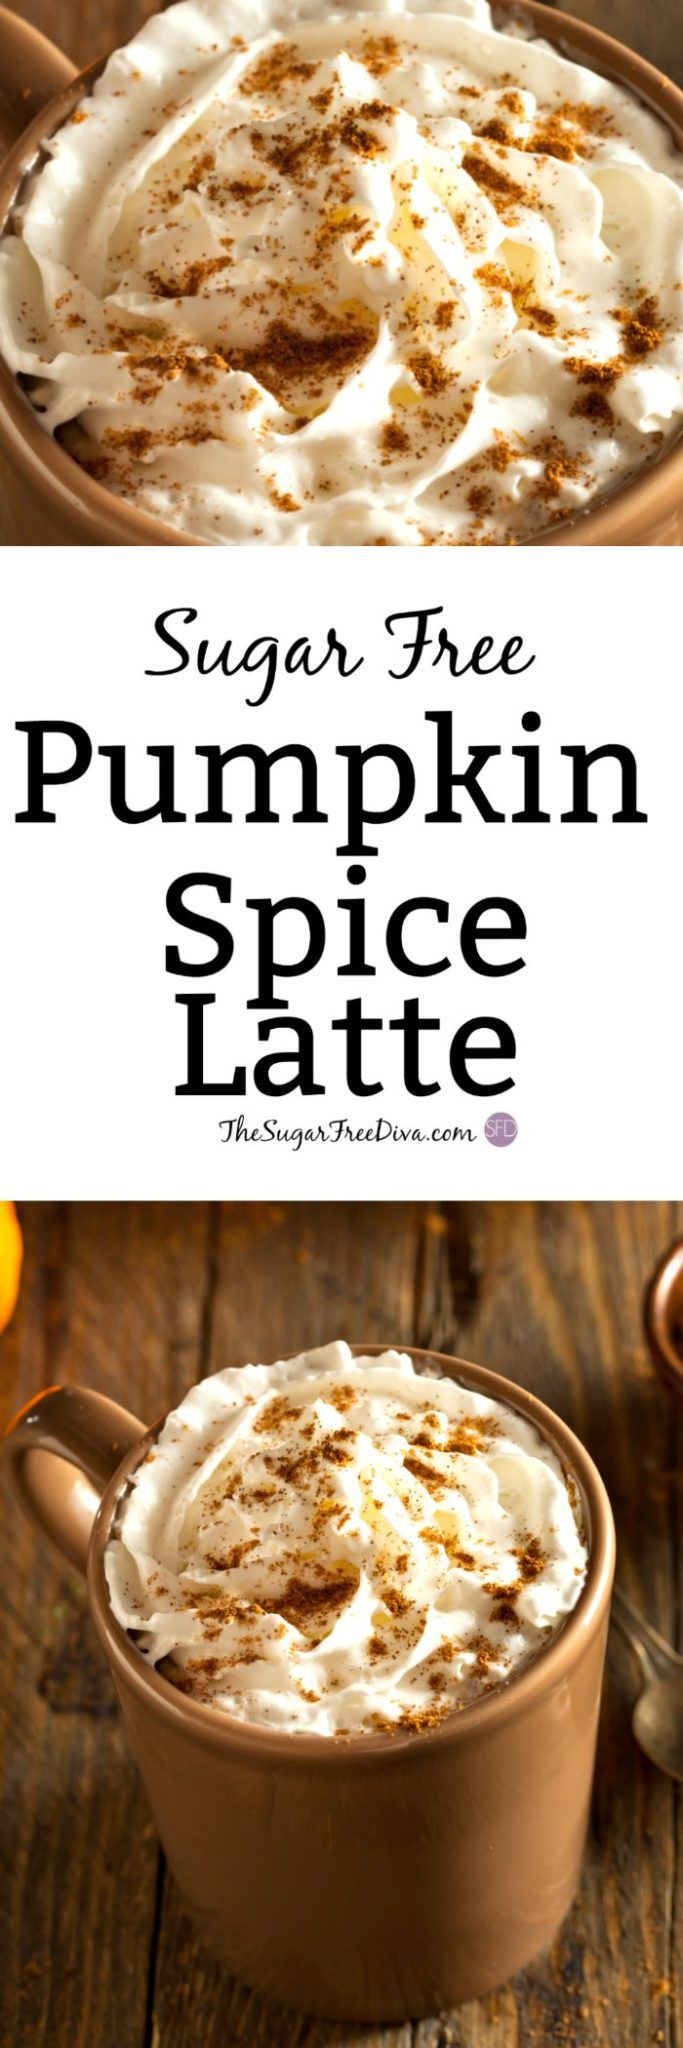 How to Make a Sugar Free Pumpkin Spice Latte--WAIT! Before you spend all that money on a latte that may also be full with sugar, check this out! It is a recipe for SUGAR FREE PUMPKIN SPICE LATTE! Such an easy and yummy recipe too that you can make at home for this fall or autumn gathering, tailgate, party, or for when you want a treat or a snack. Halloween anyone?